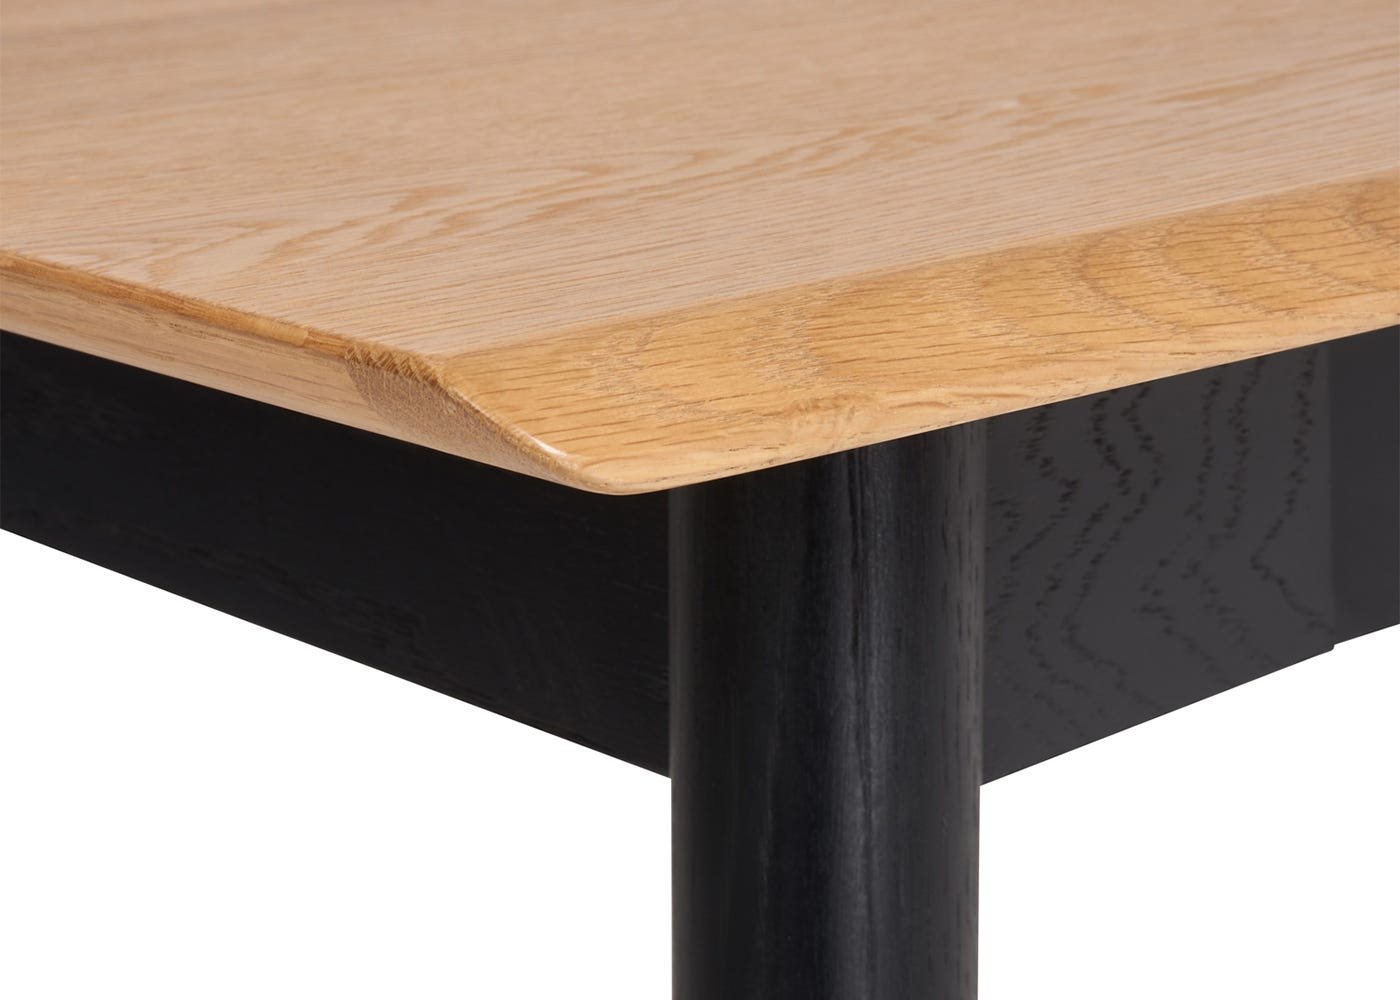 Monza Dining Table - Detail View - Not Extended